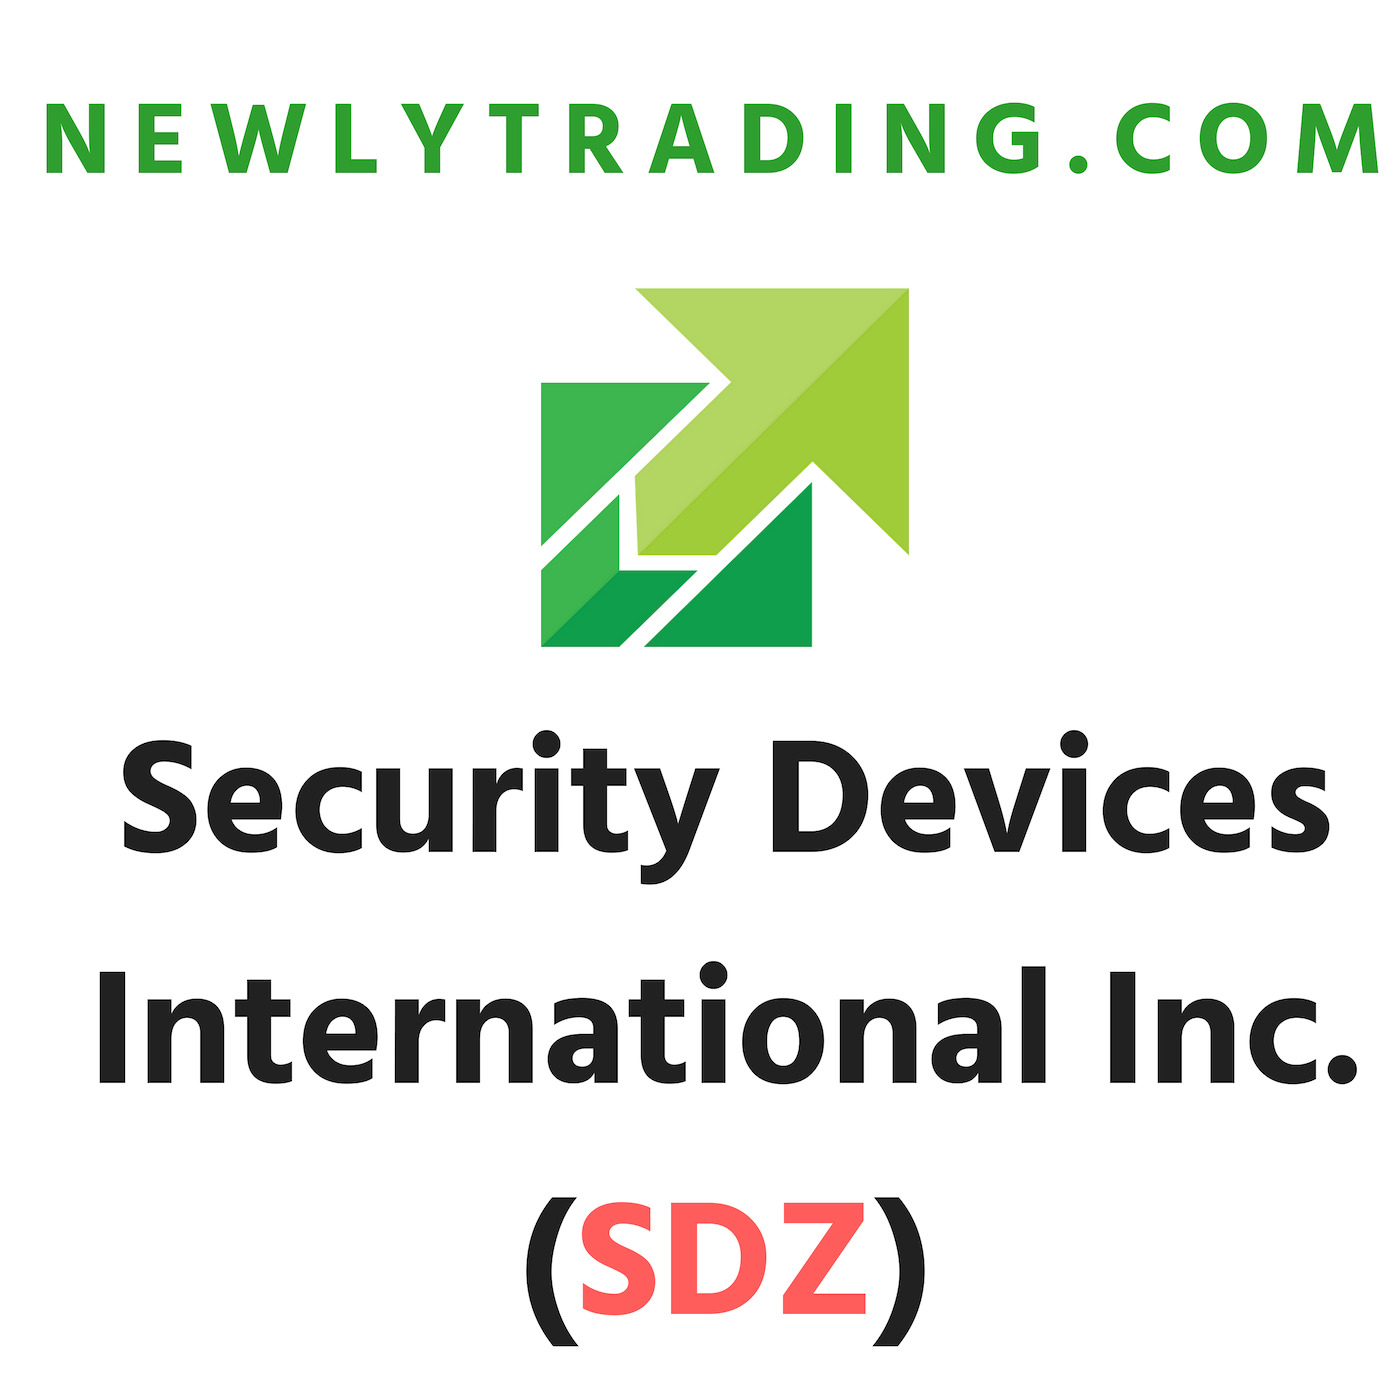 Security Devices International Inc (SDZ:CNX)